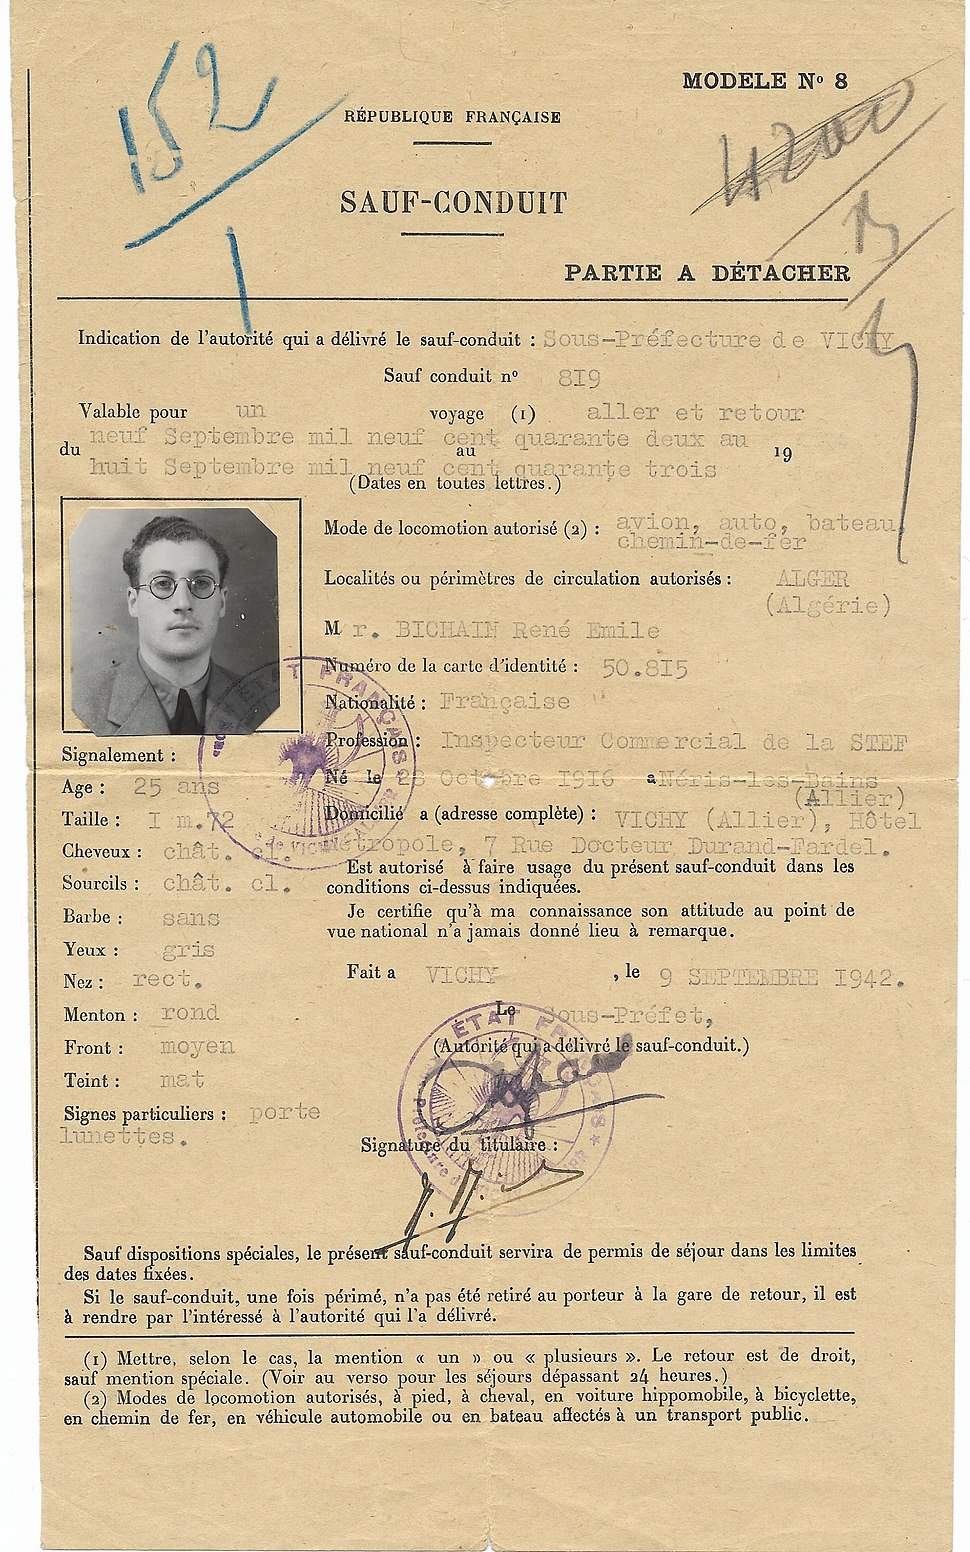 1942 Vichy France safe-conduct passport used for Algeria